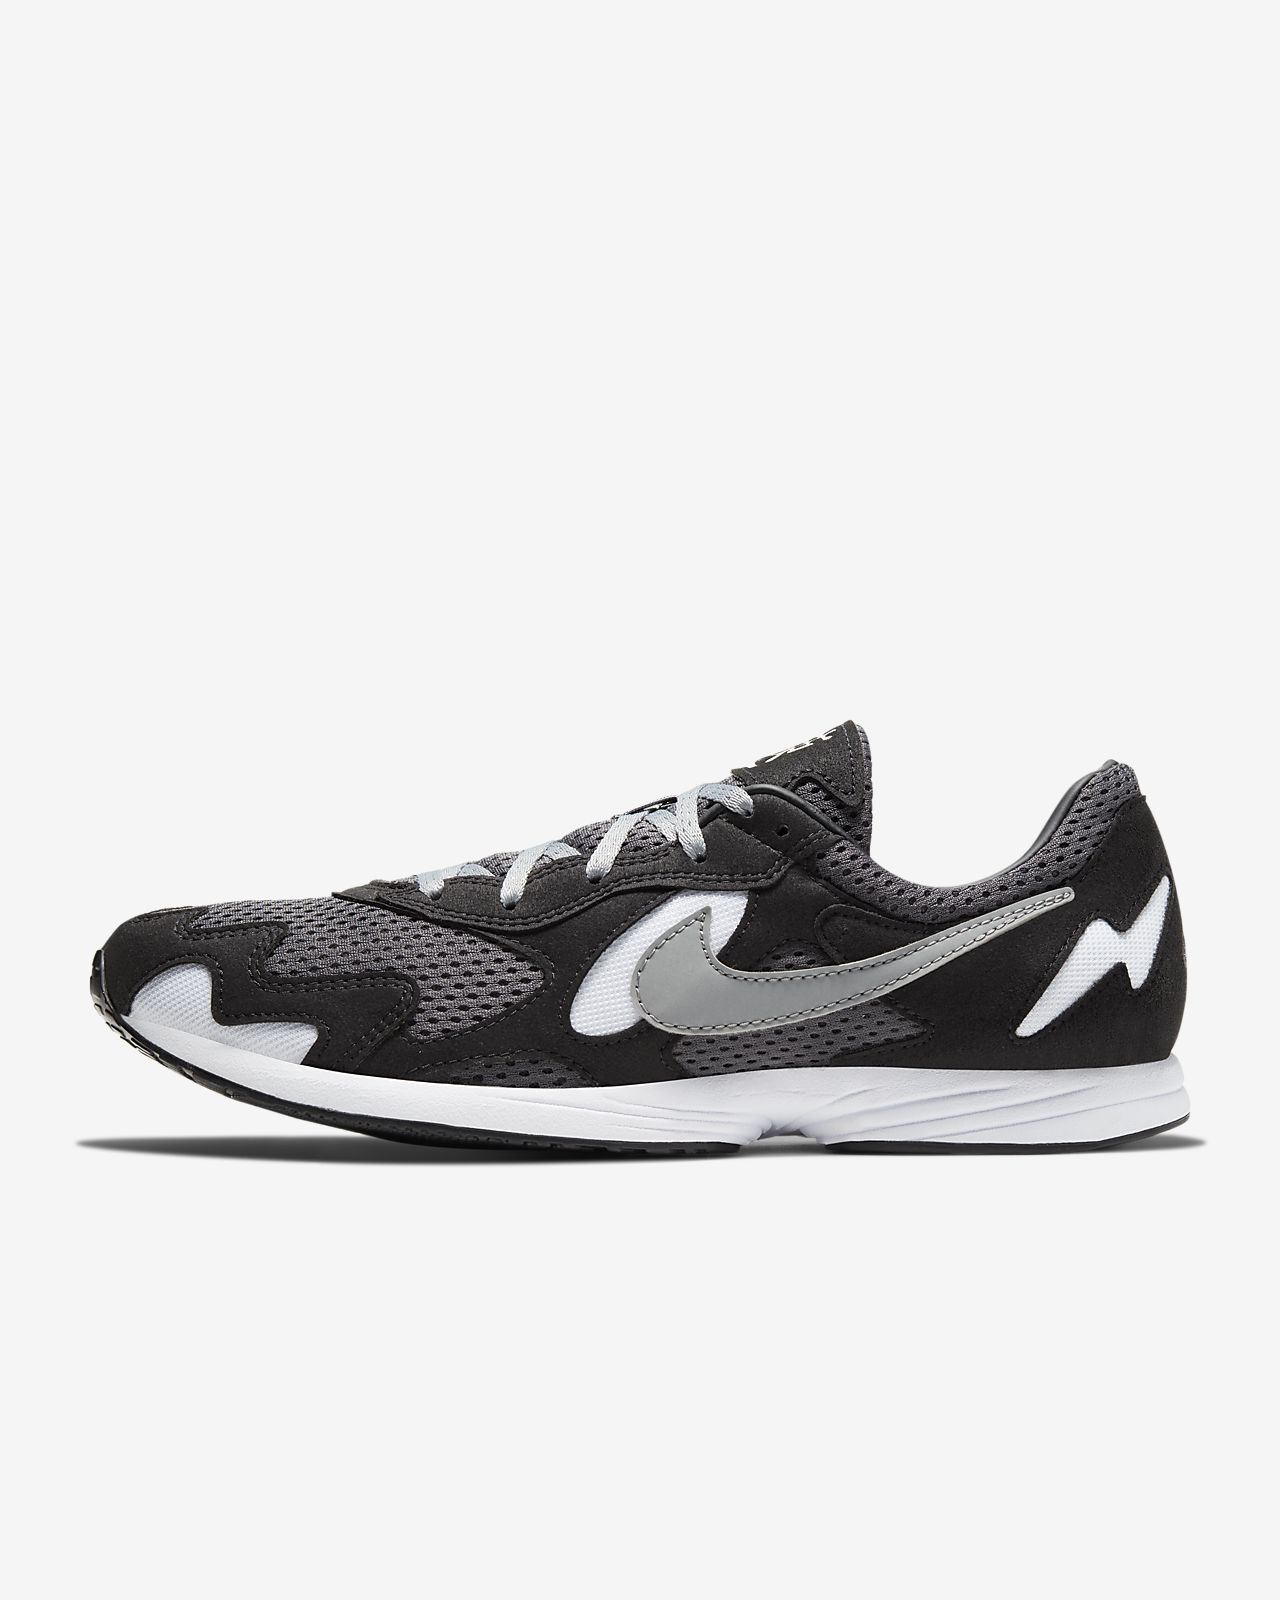 Nike Air Streak Lite Shoes